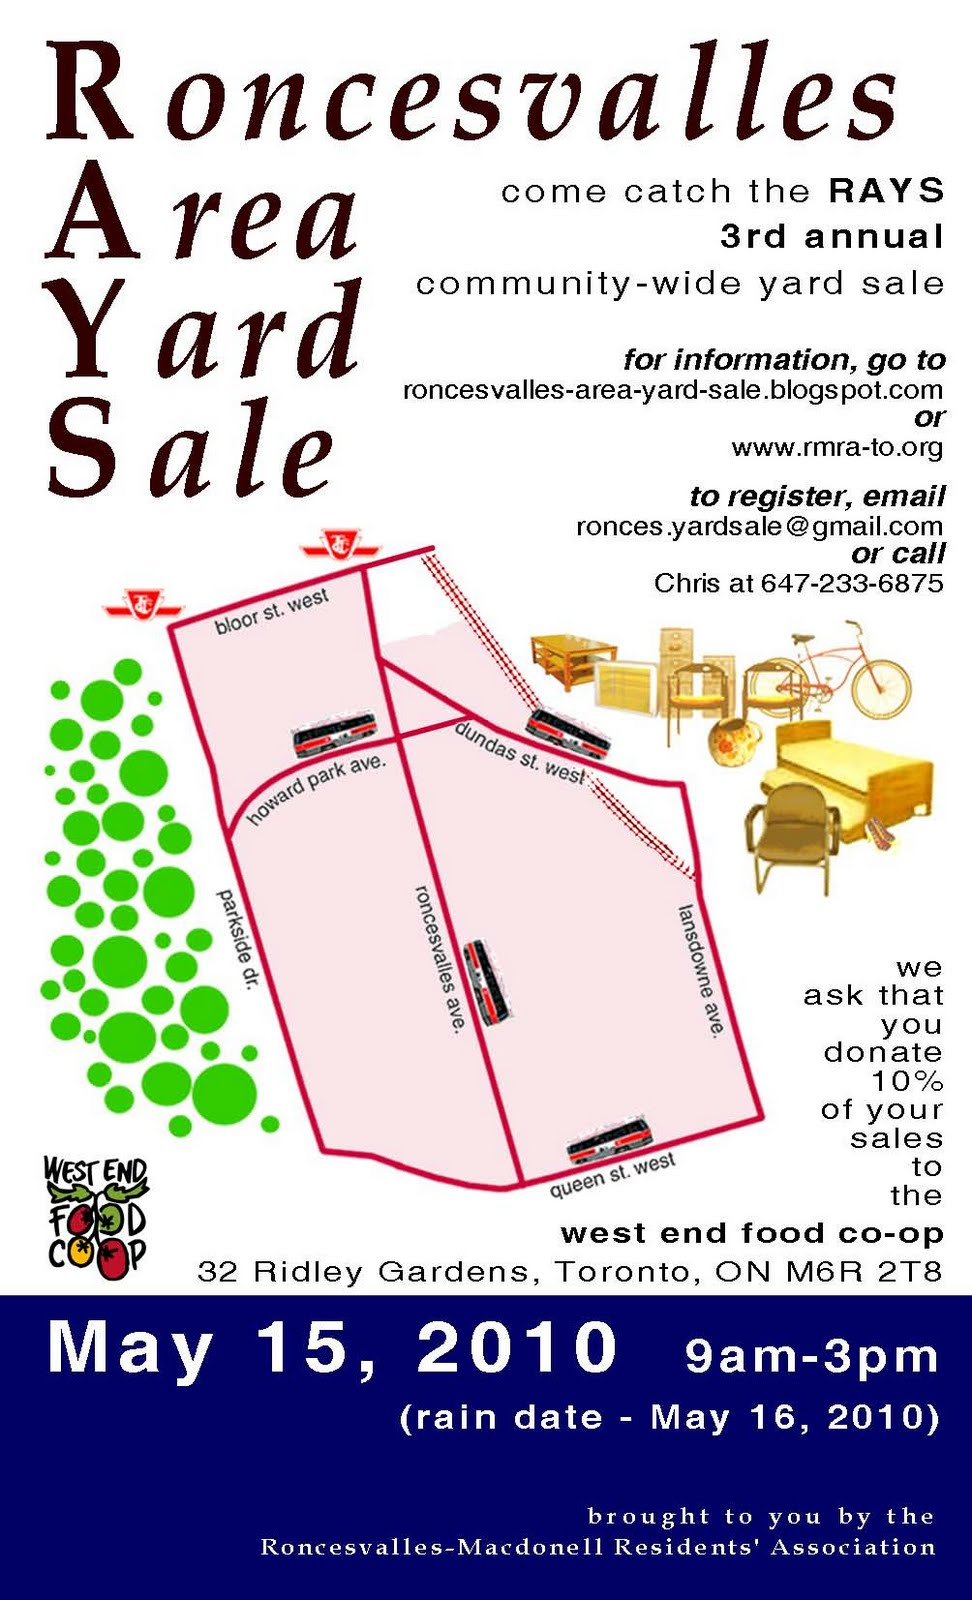 Roncesvalles Area Yard Sale (RAYS!)